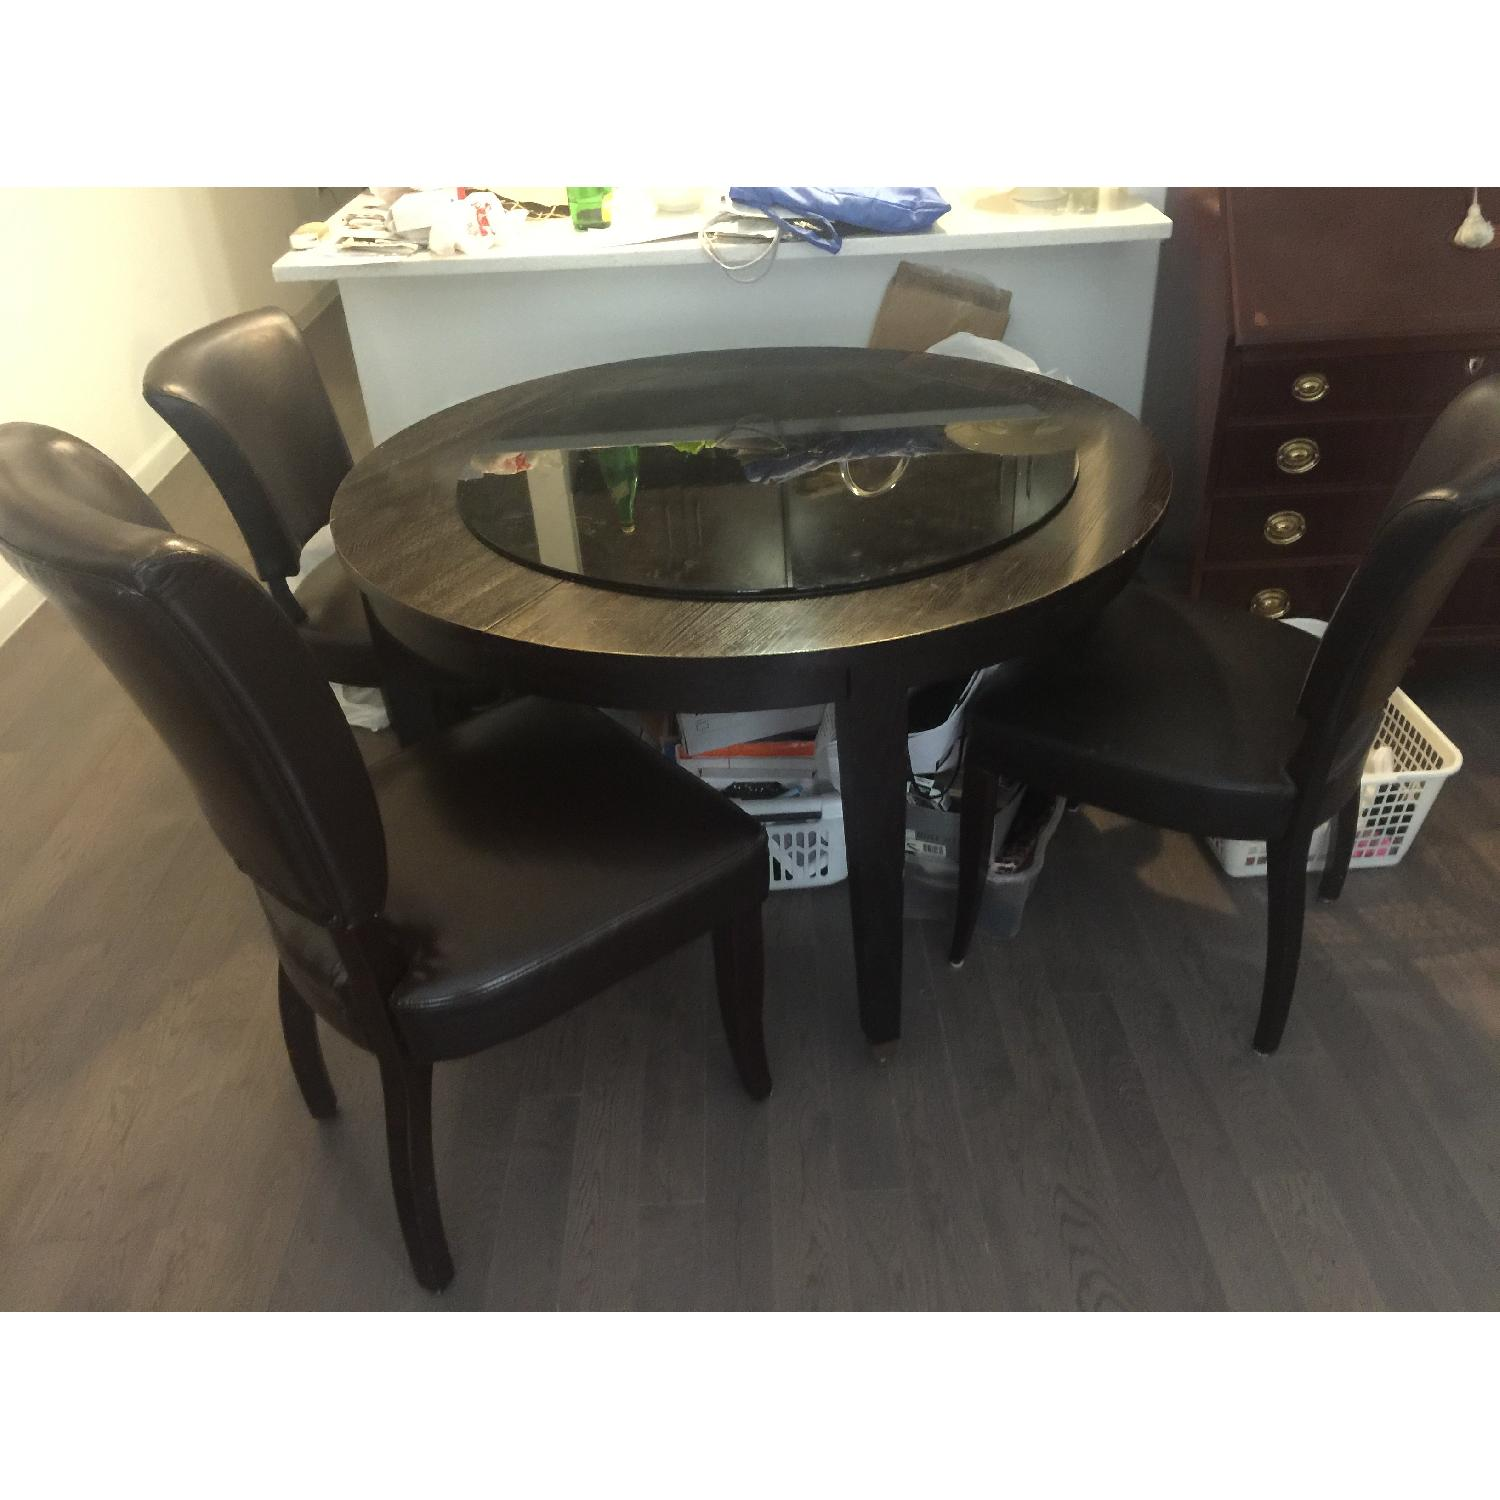 Crate & Barrel Black Ash Extendable Dining Table w/ 3 Chairs - image-1